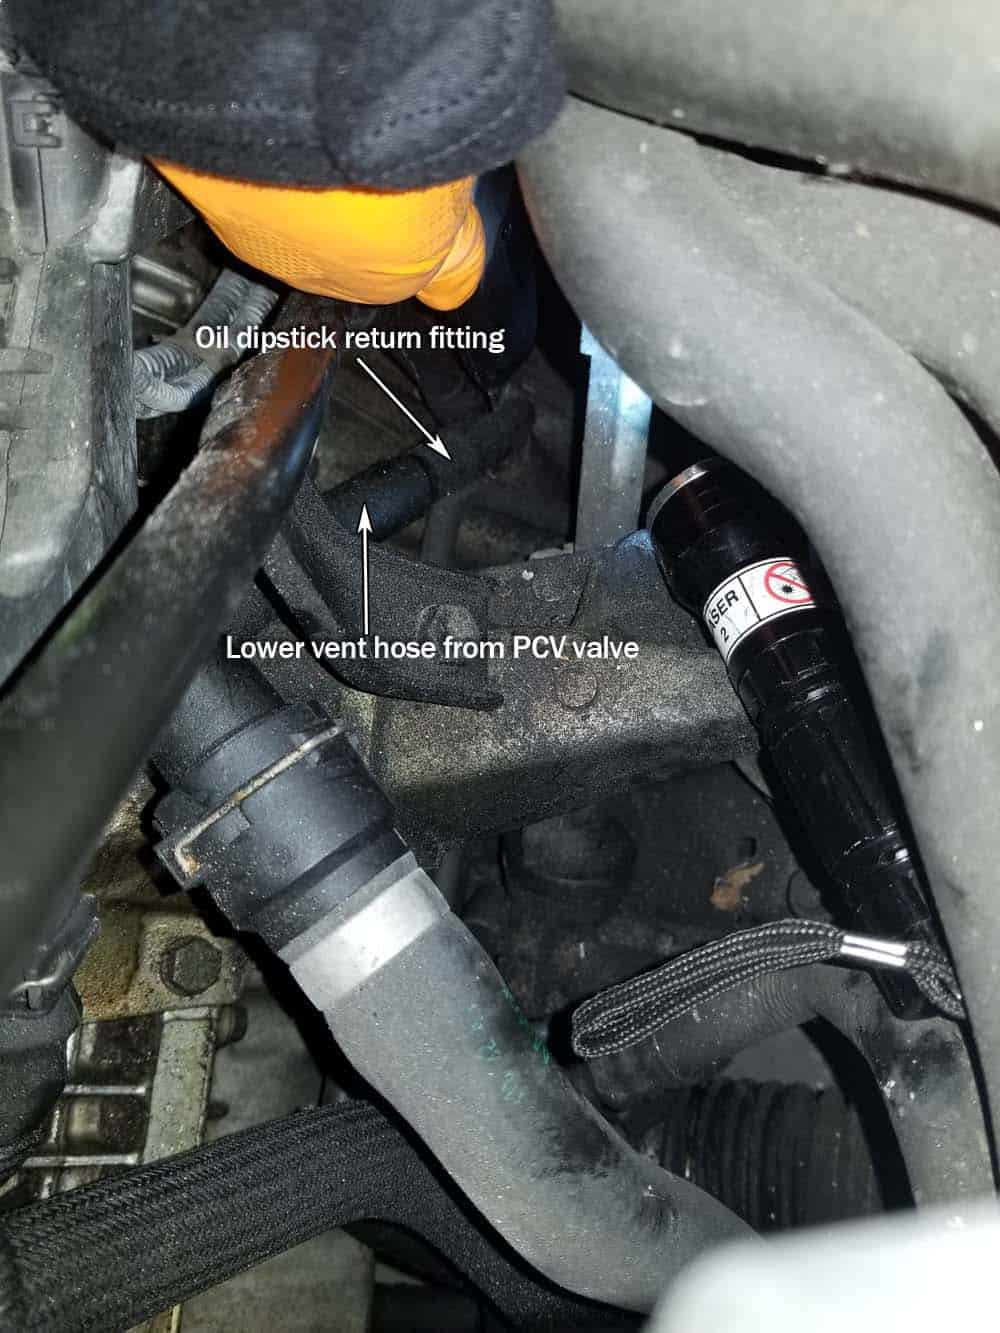 bmw e46 pcv valve replacement - Use a little engine oil to help lube the dipstick fitting so the lower vent hose slides on.